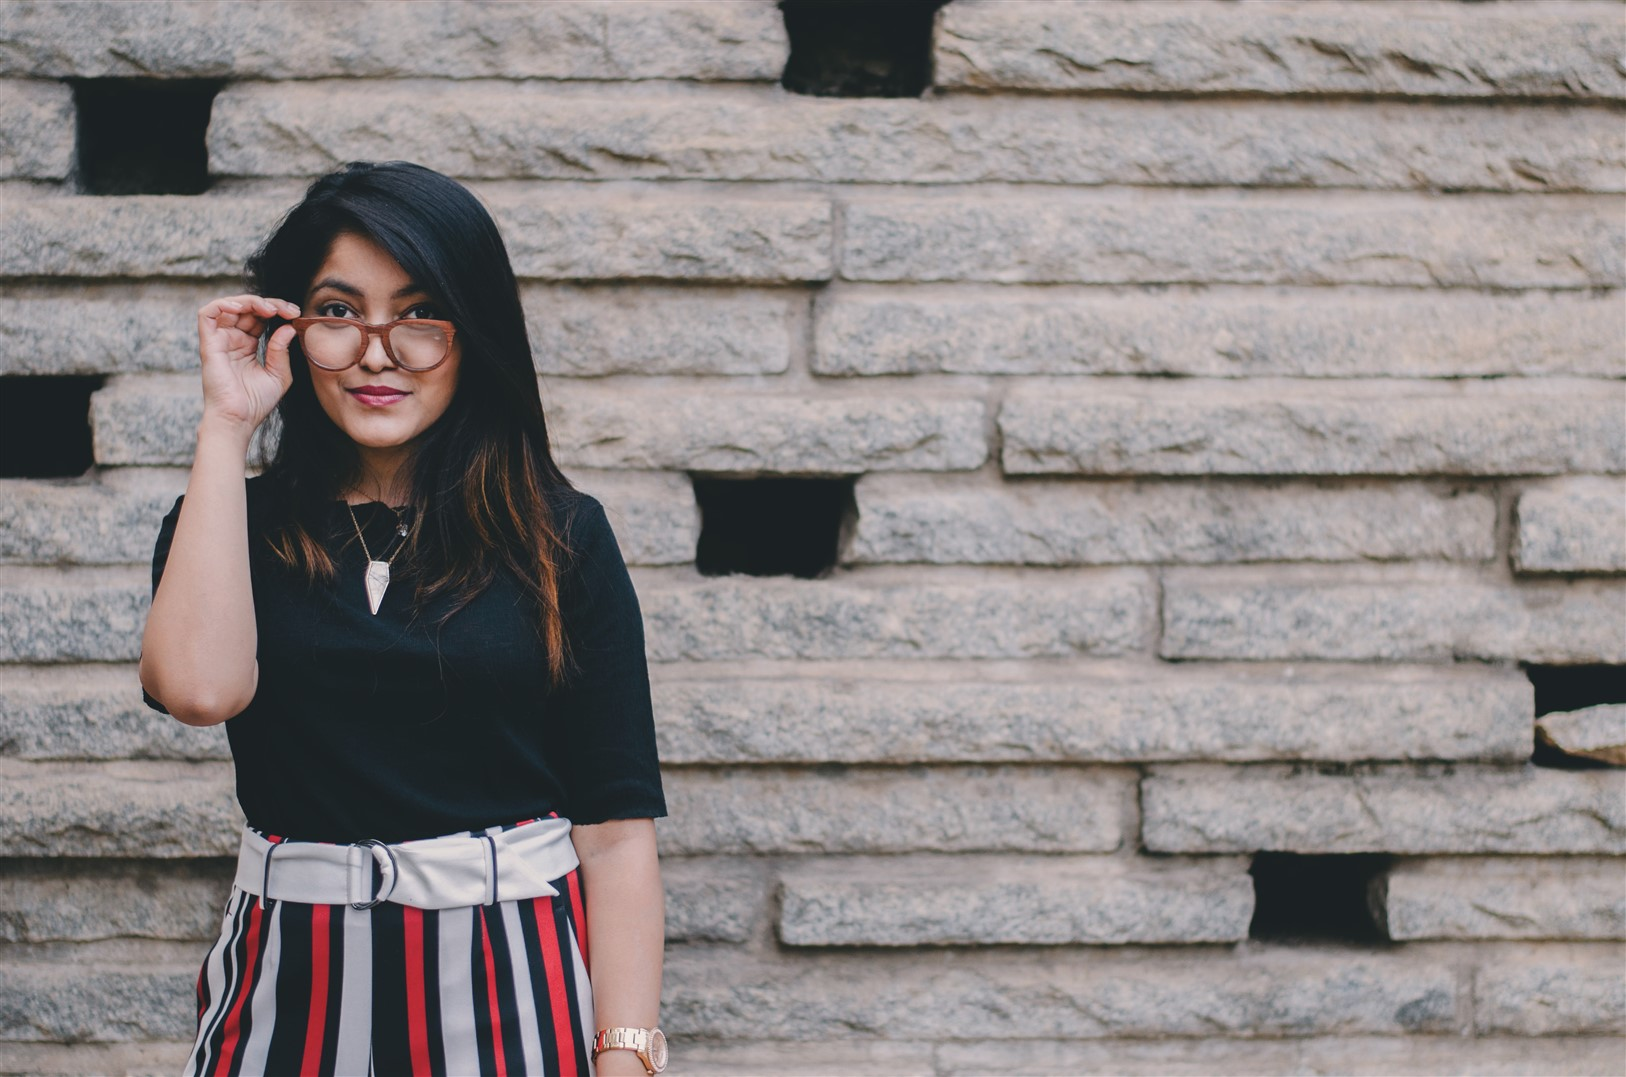 fashion blogger princy mascarenhas the jeromy diaries in woodgeek rose wooden spectacles